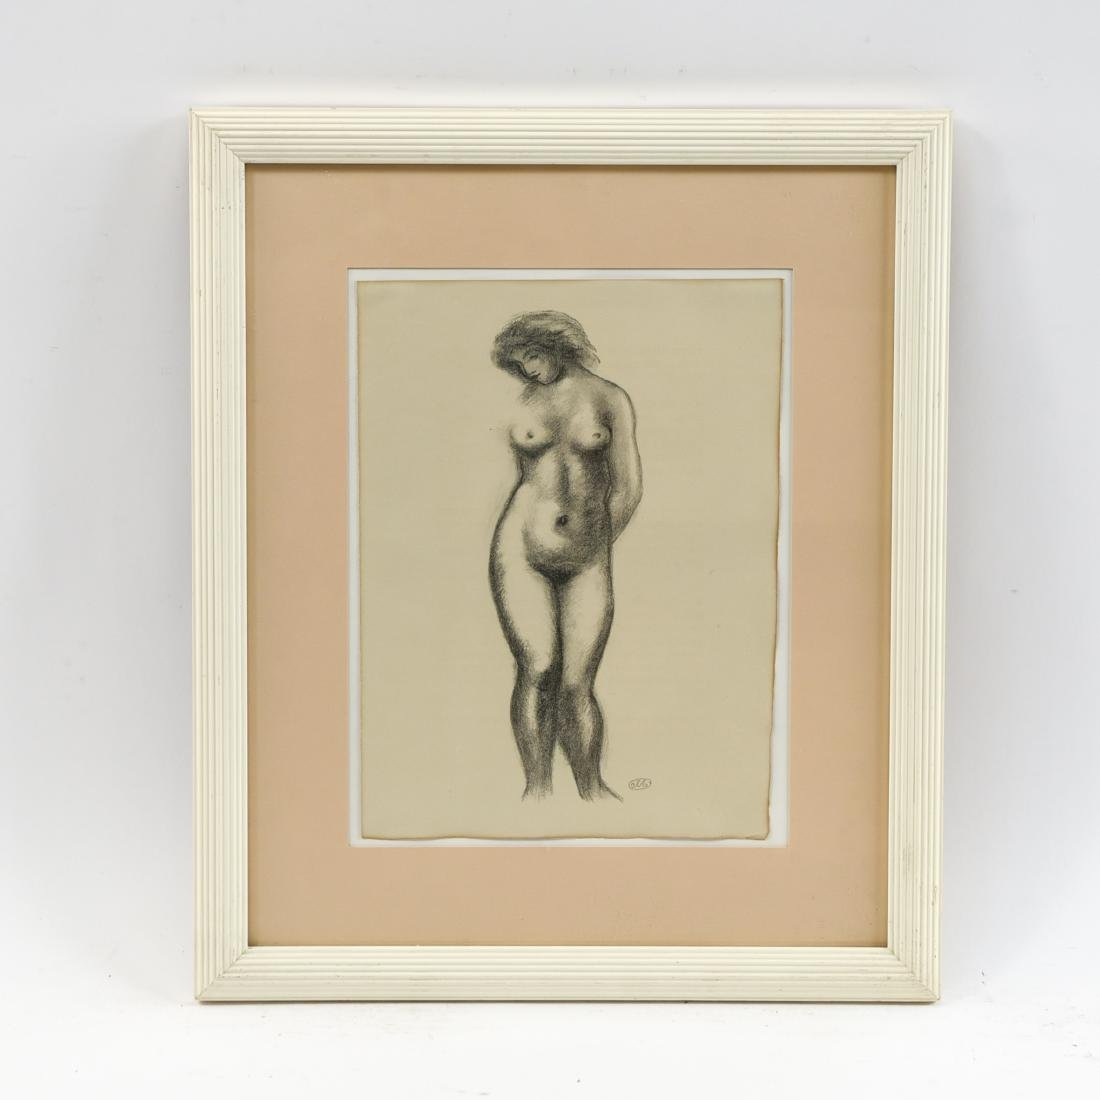 MAILLOT LITHOGRAPH OF NUDES